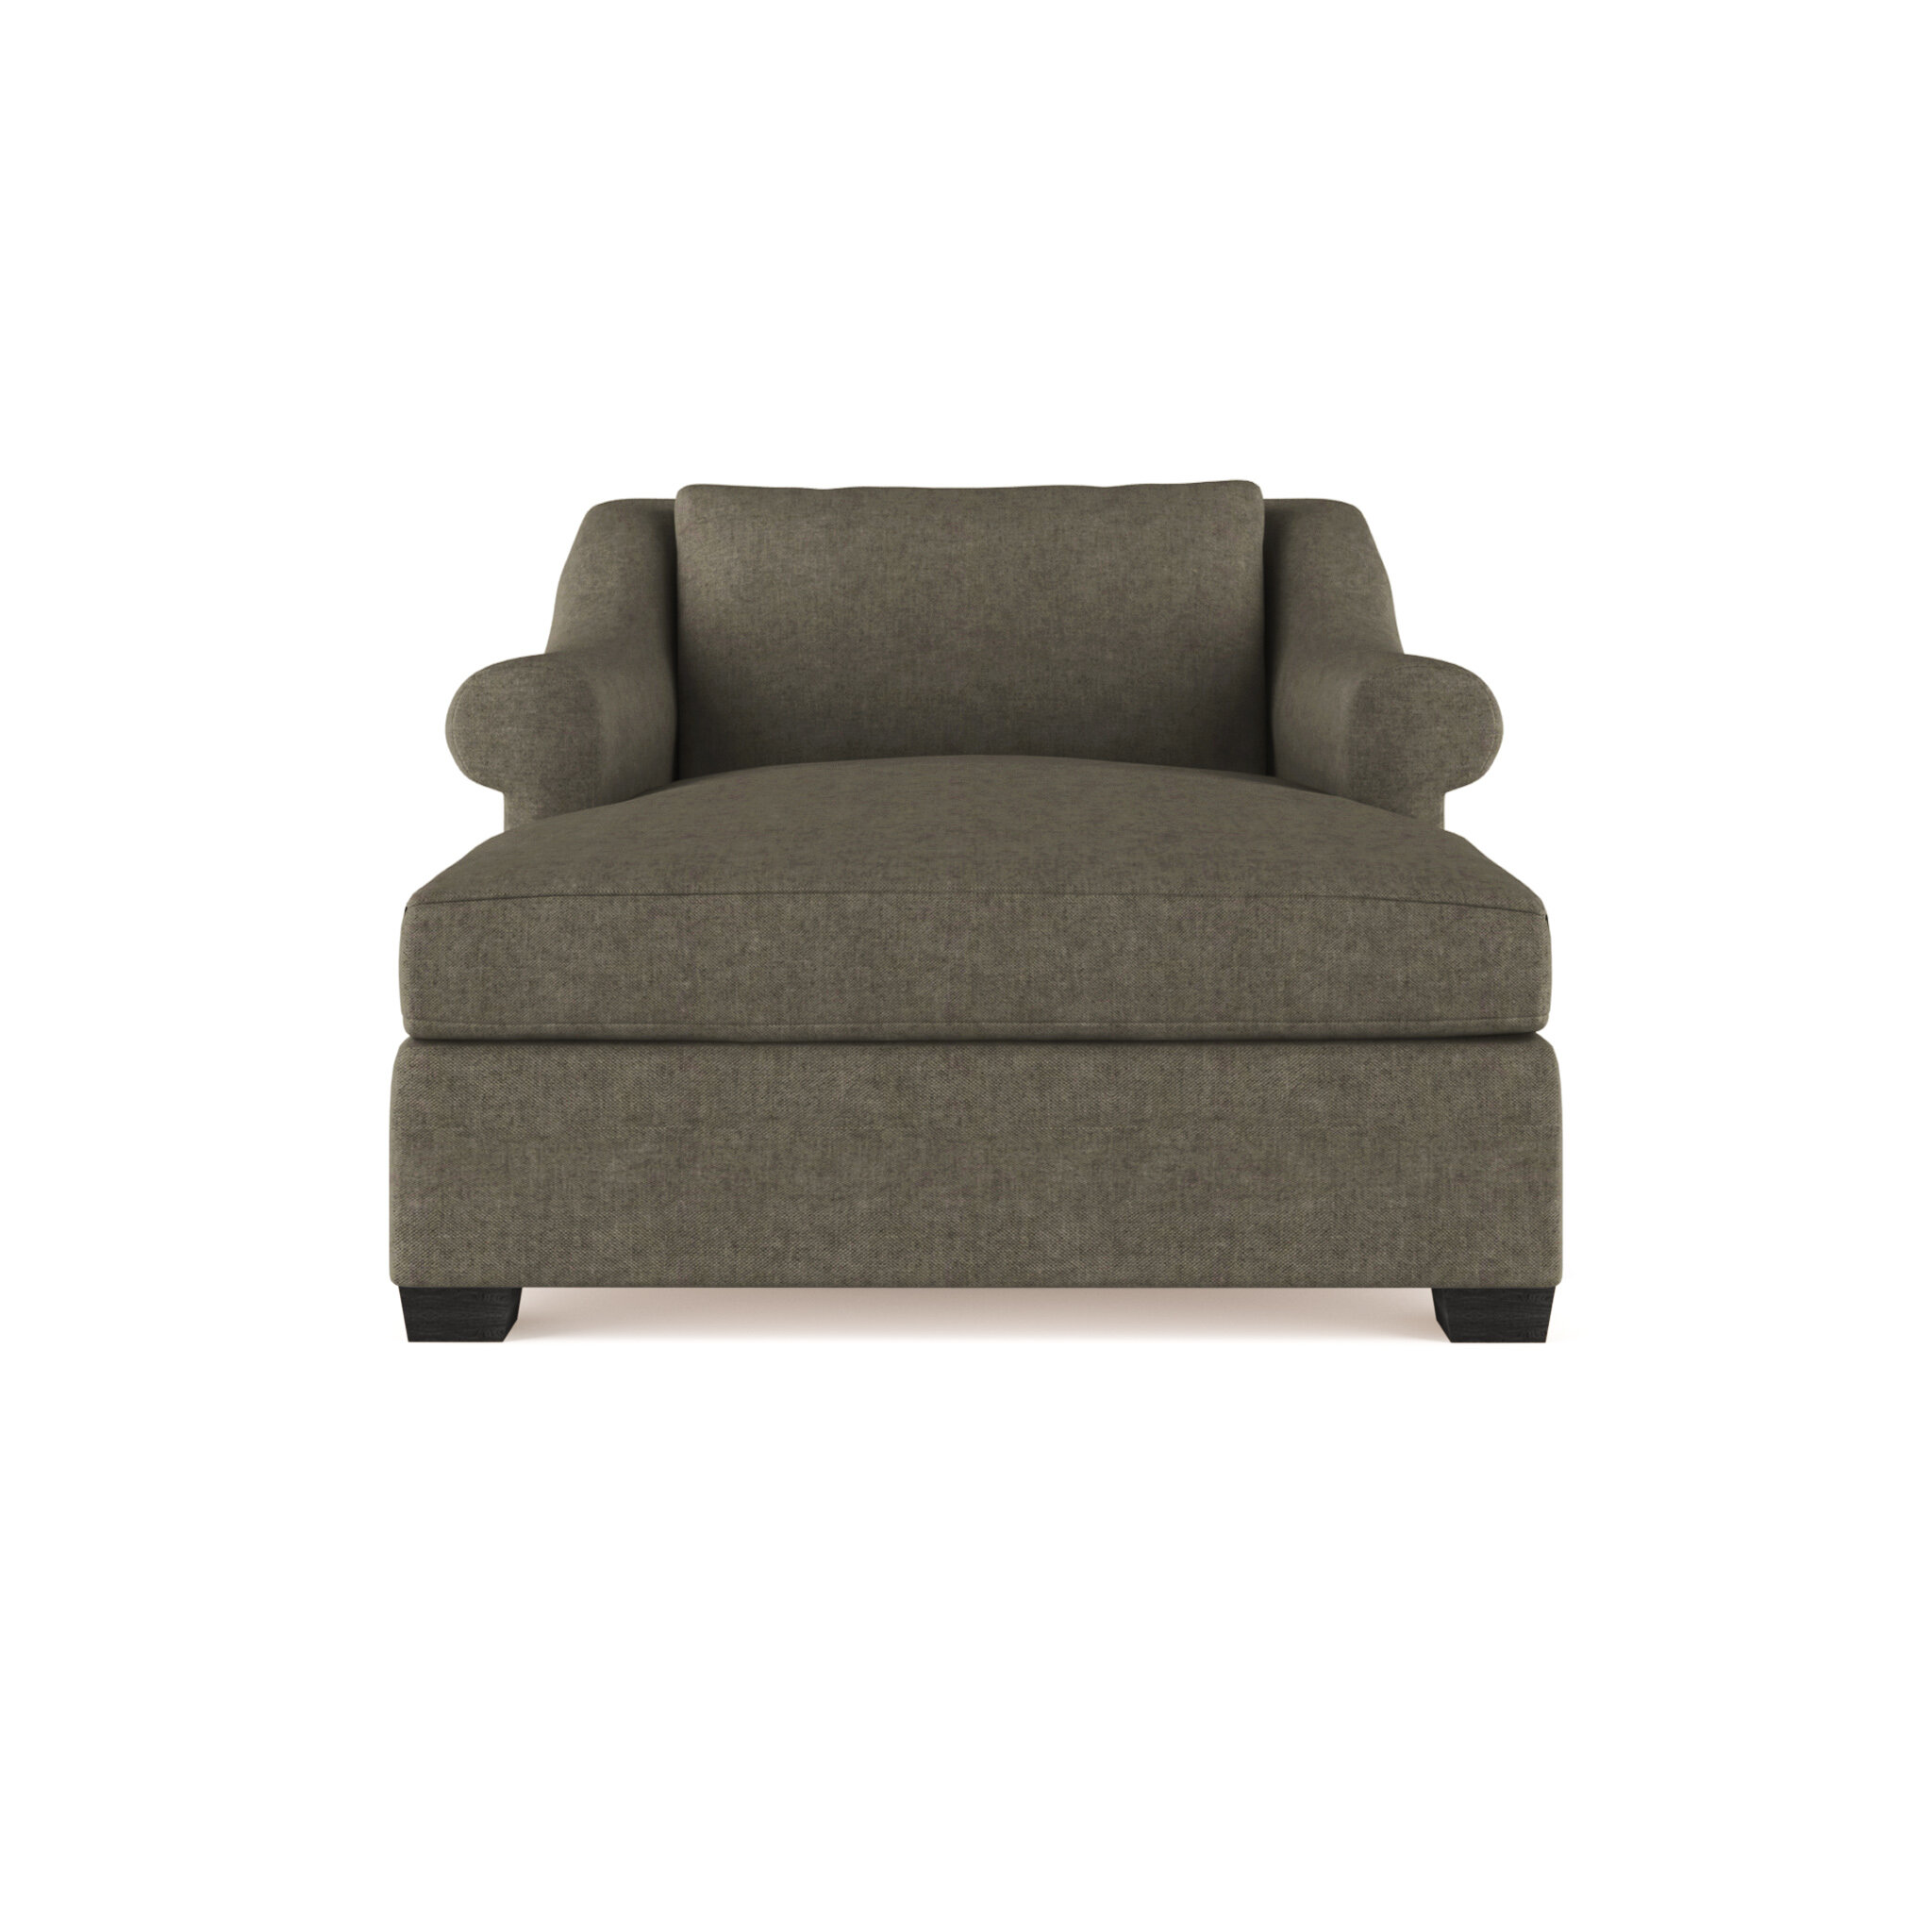 - Canora Grey Auberge Vintage Leather Chaise Lounge Wayfair